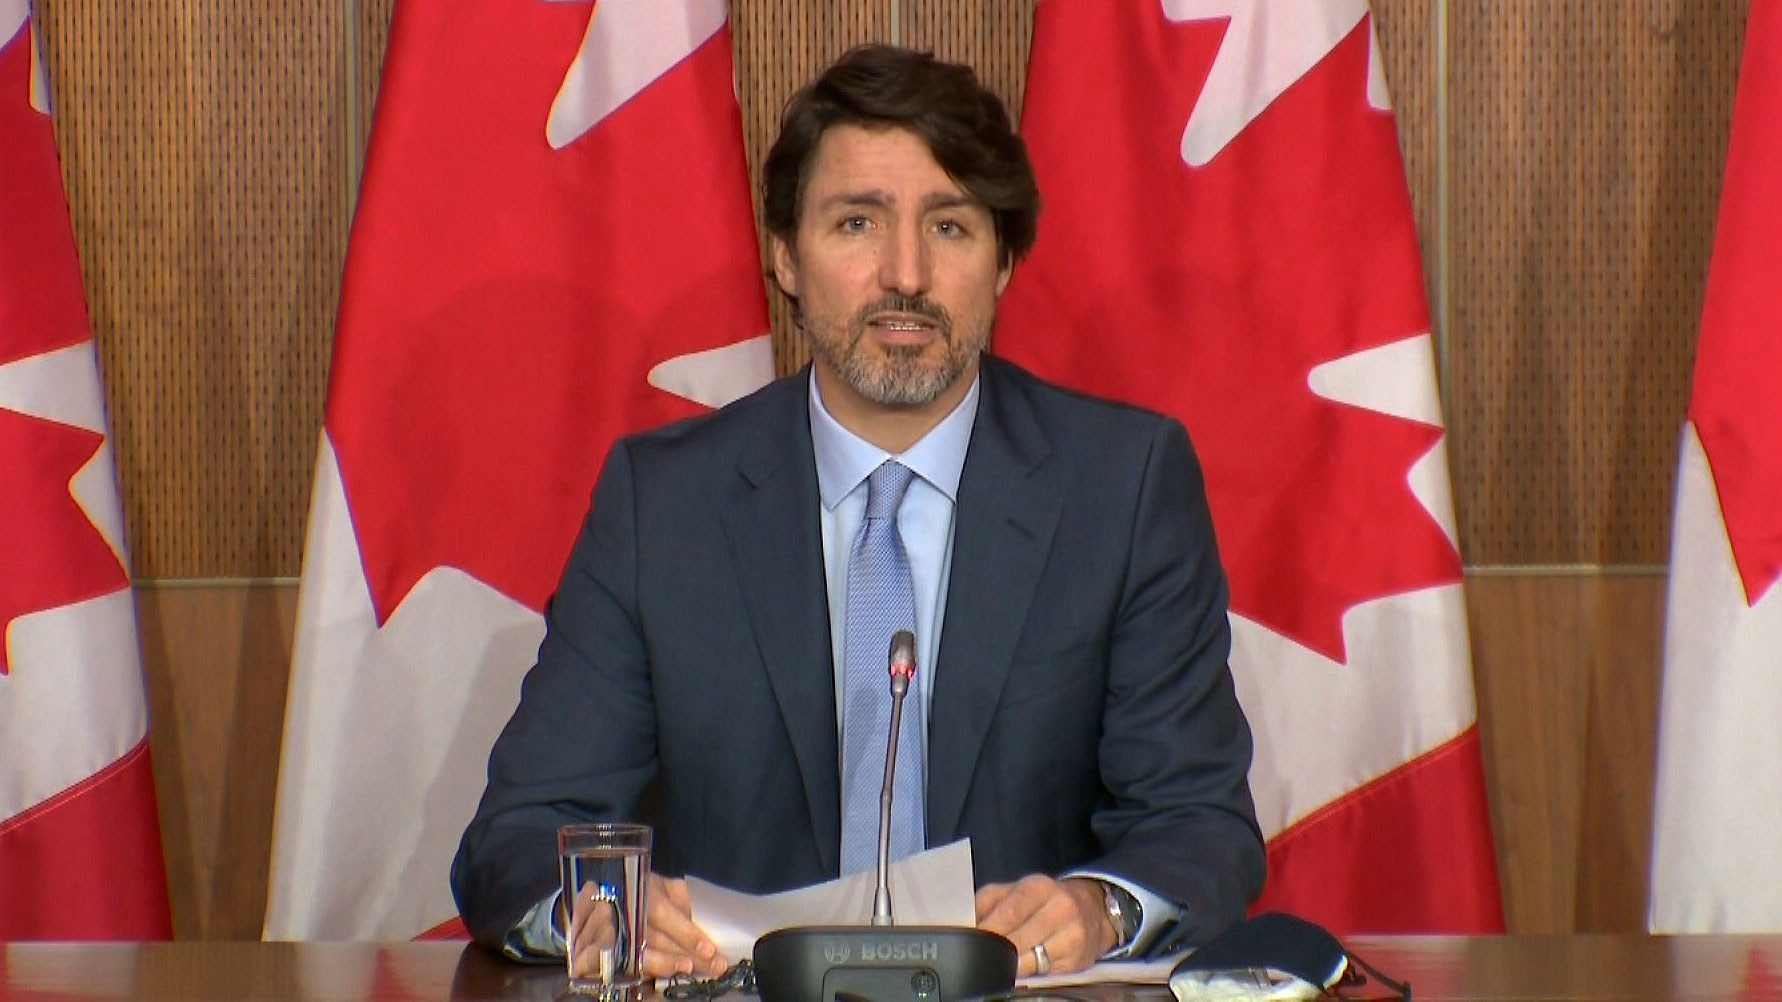 Canadian Prime Minister Justin Trudeau holds a news conference on Tuesday.